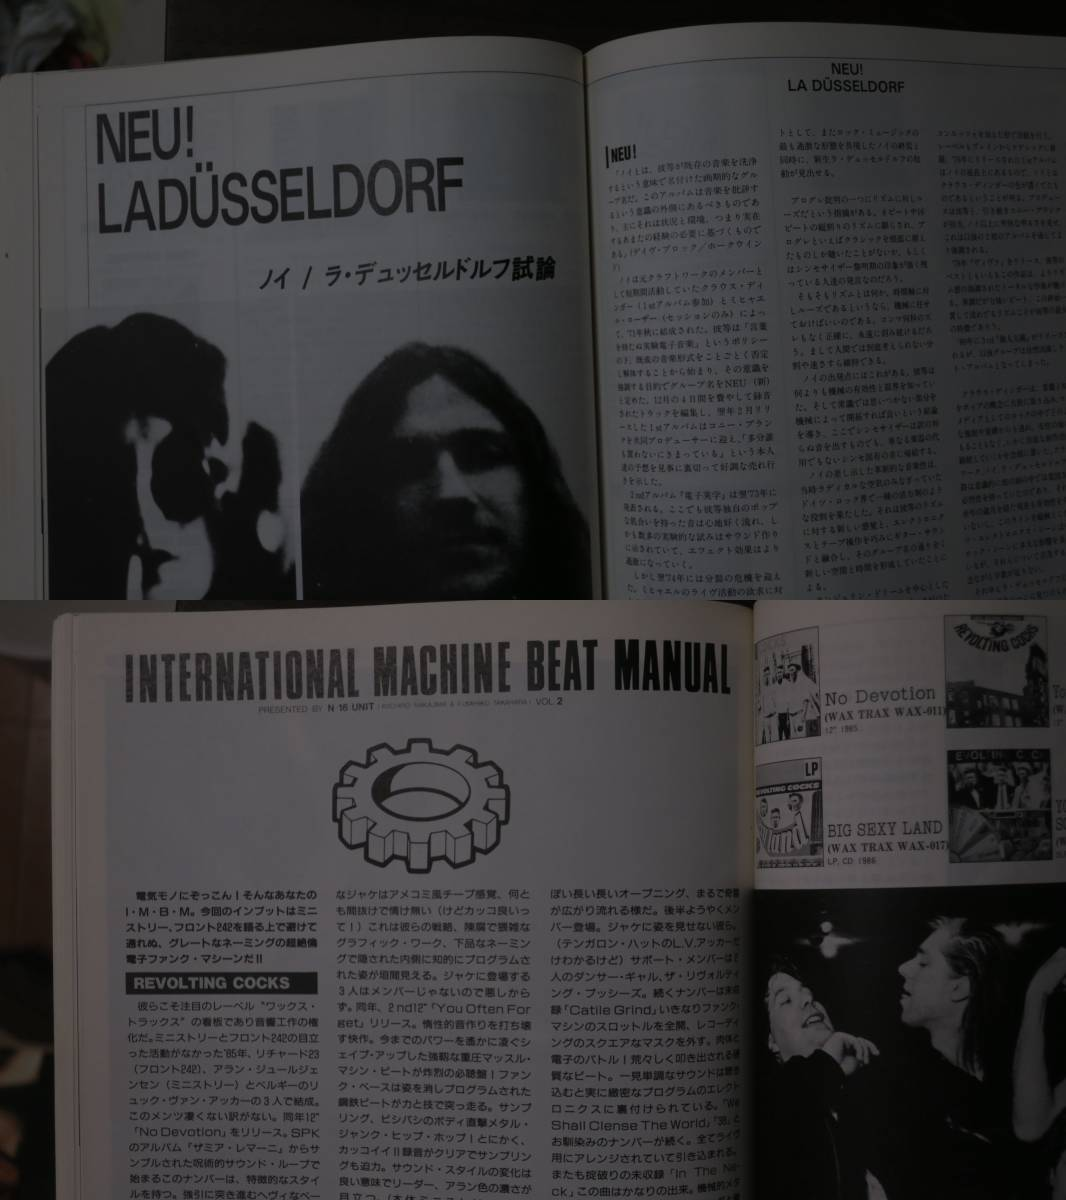 newswave21THE CURE小野島大PETE TOWNSHEND/NICK CAVE/MARK STEWART/THE HOUSE OF LOVE/Guy Chadwick/Robert Smith/THE WHO/POP GROUP/NEU!_画像8